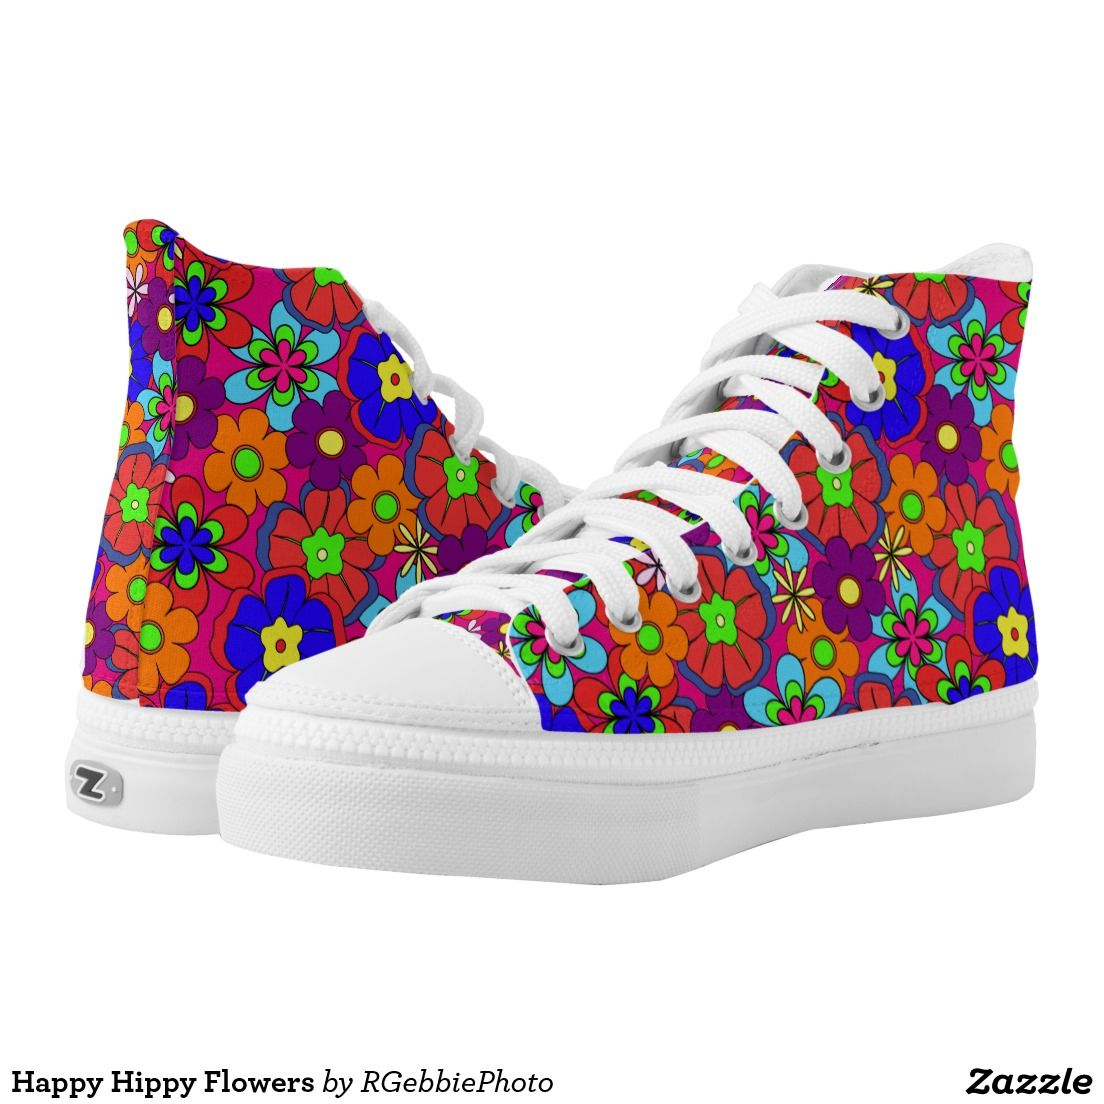 Happy Hippy Flowers High-Top Sneakers - $112.45 - Happy Hippy Flowers High-Top Sneakers - by #RGebbiePhoto @ #zazzle - #Flowers #Hippy #Retro - You'll be kickin with these! Bold, Colorful retro style flowers, hippy style in bright colors! Large petal flowers in a jumbled assortment. 70s Hippy look, great throwback item!